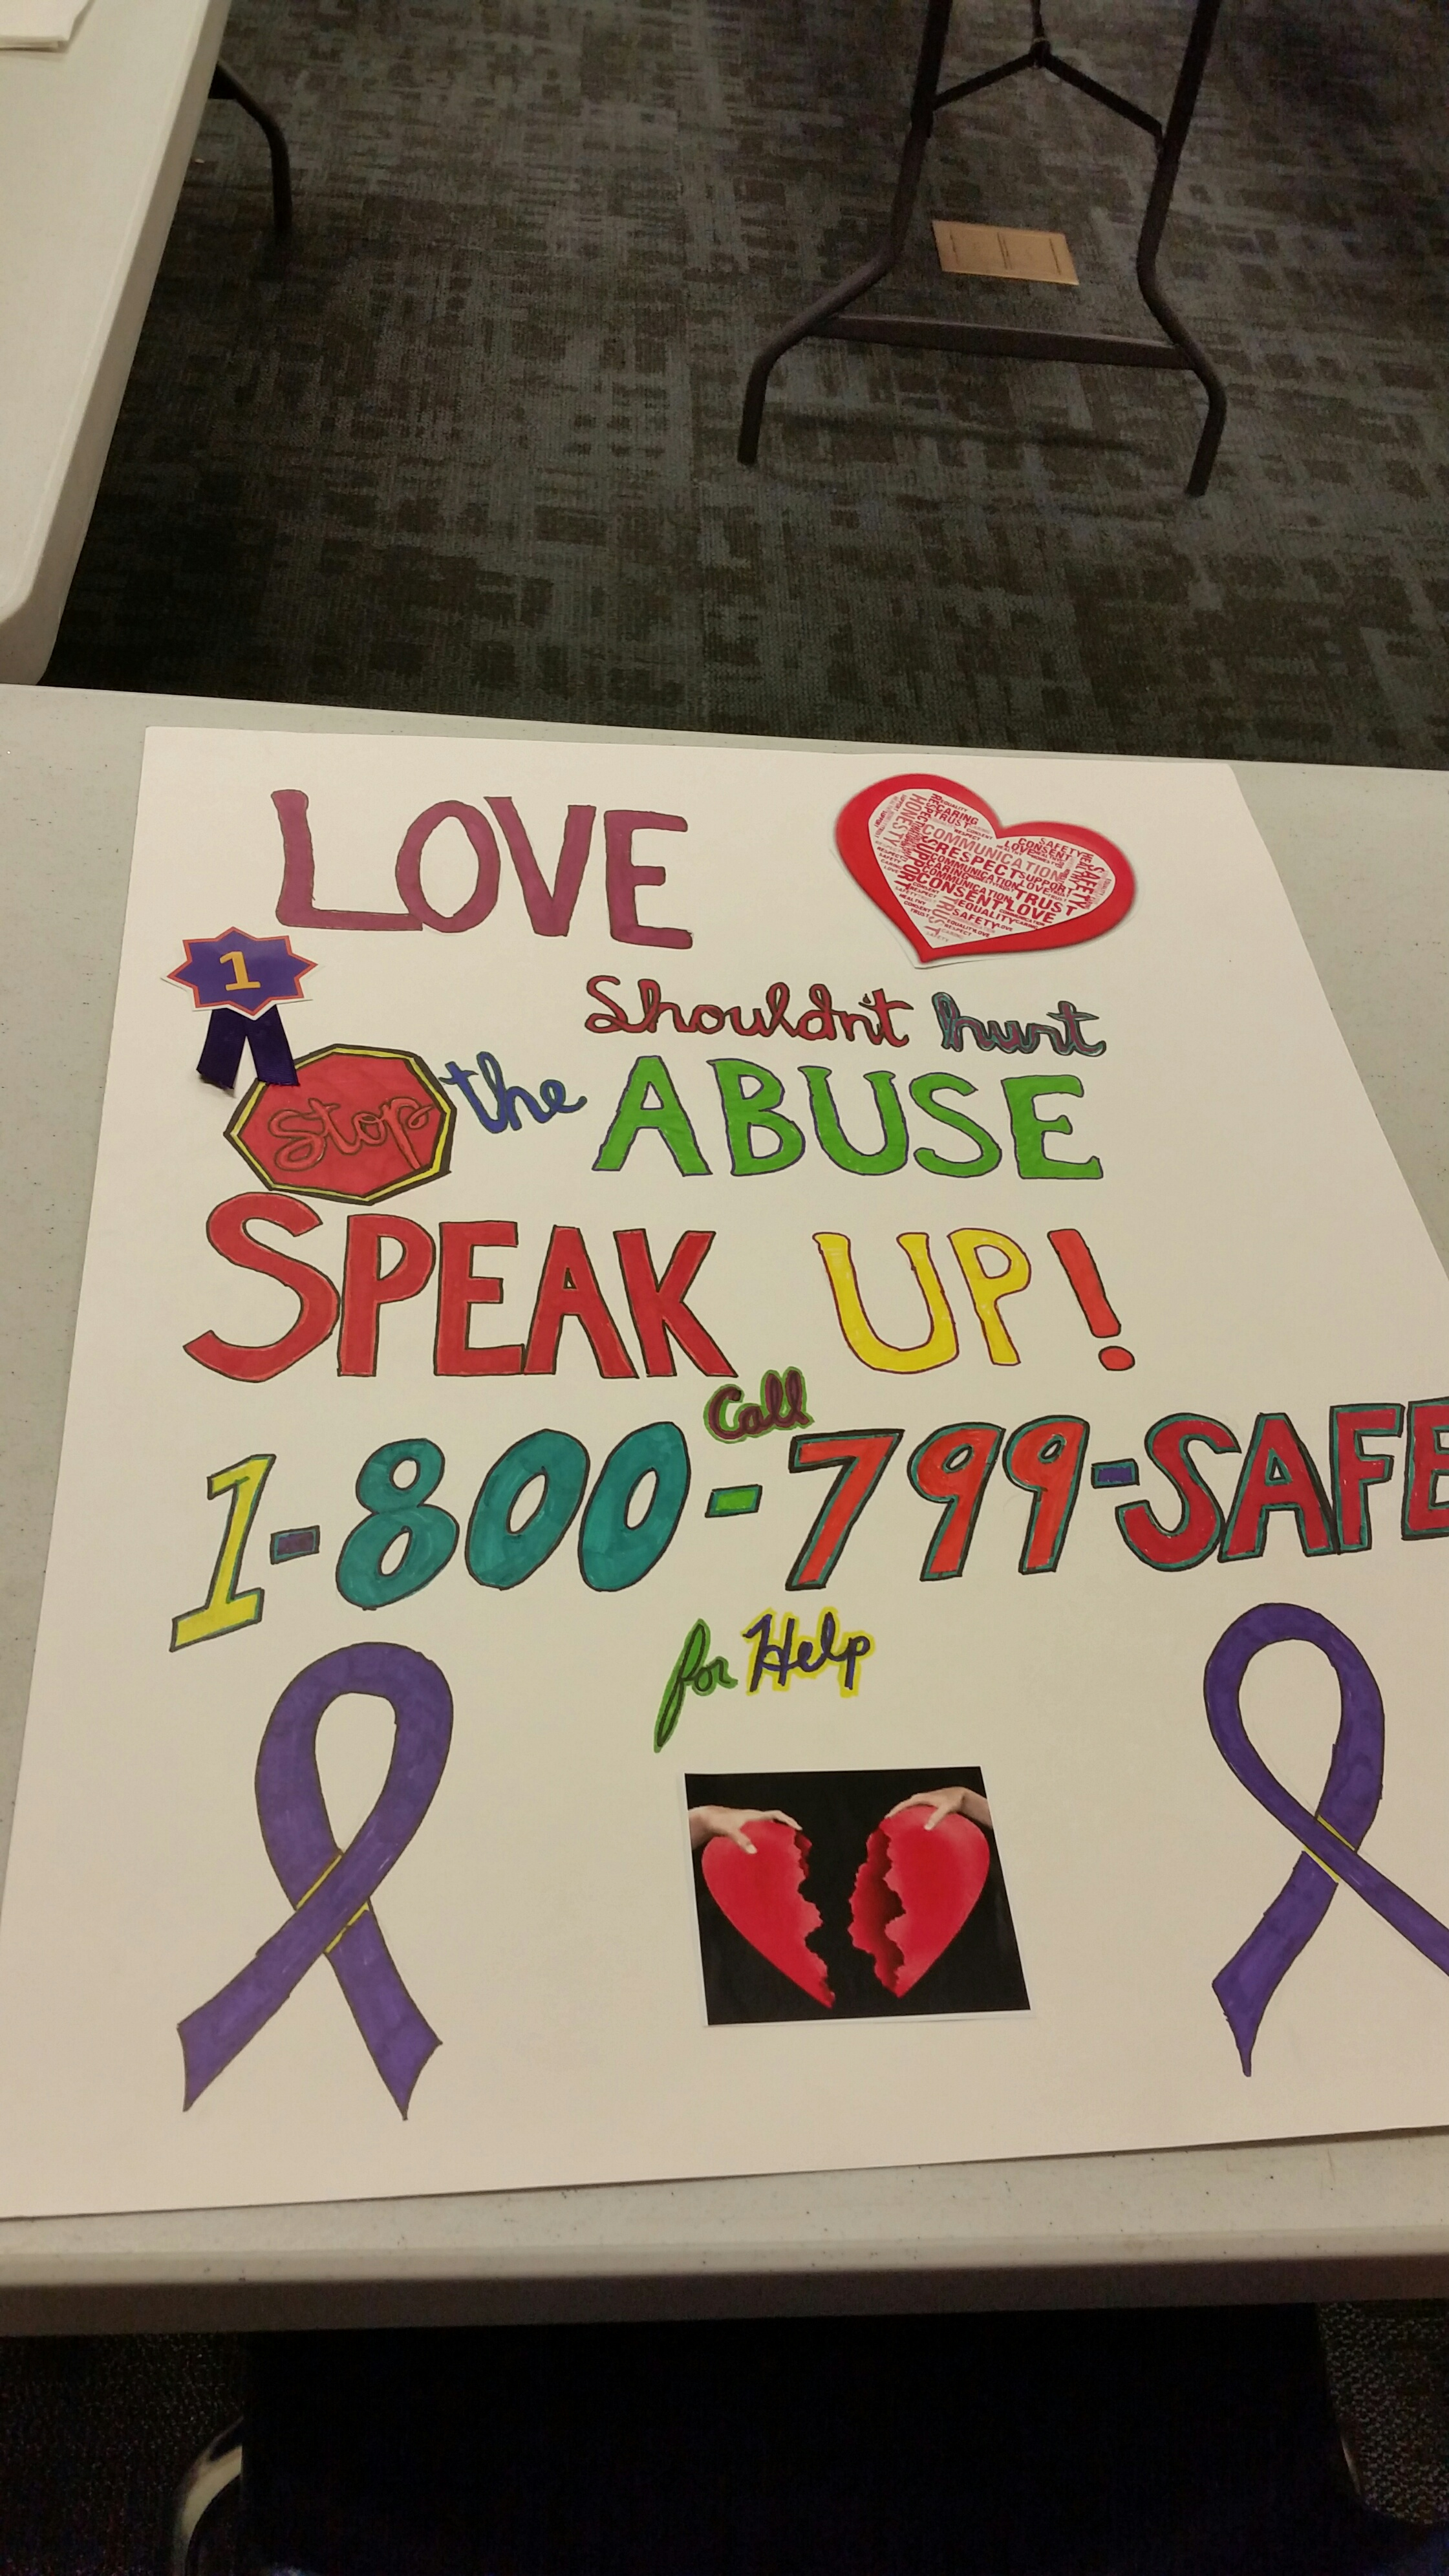 Dating violence awareness week